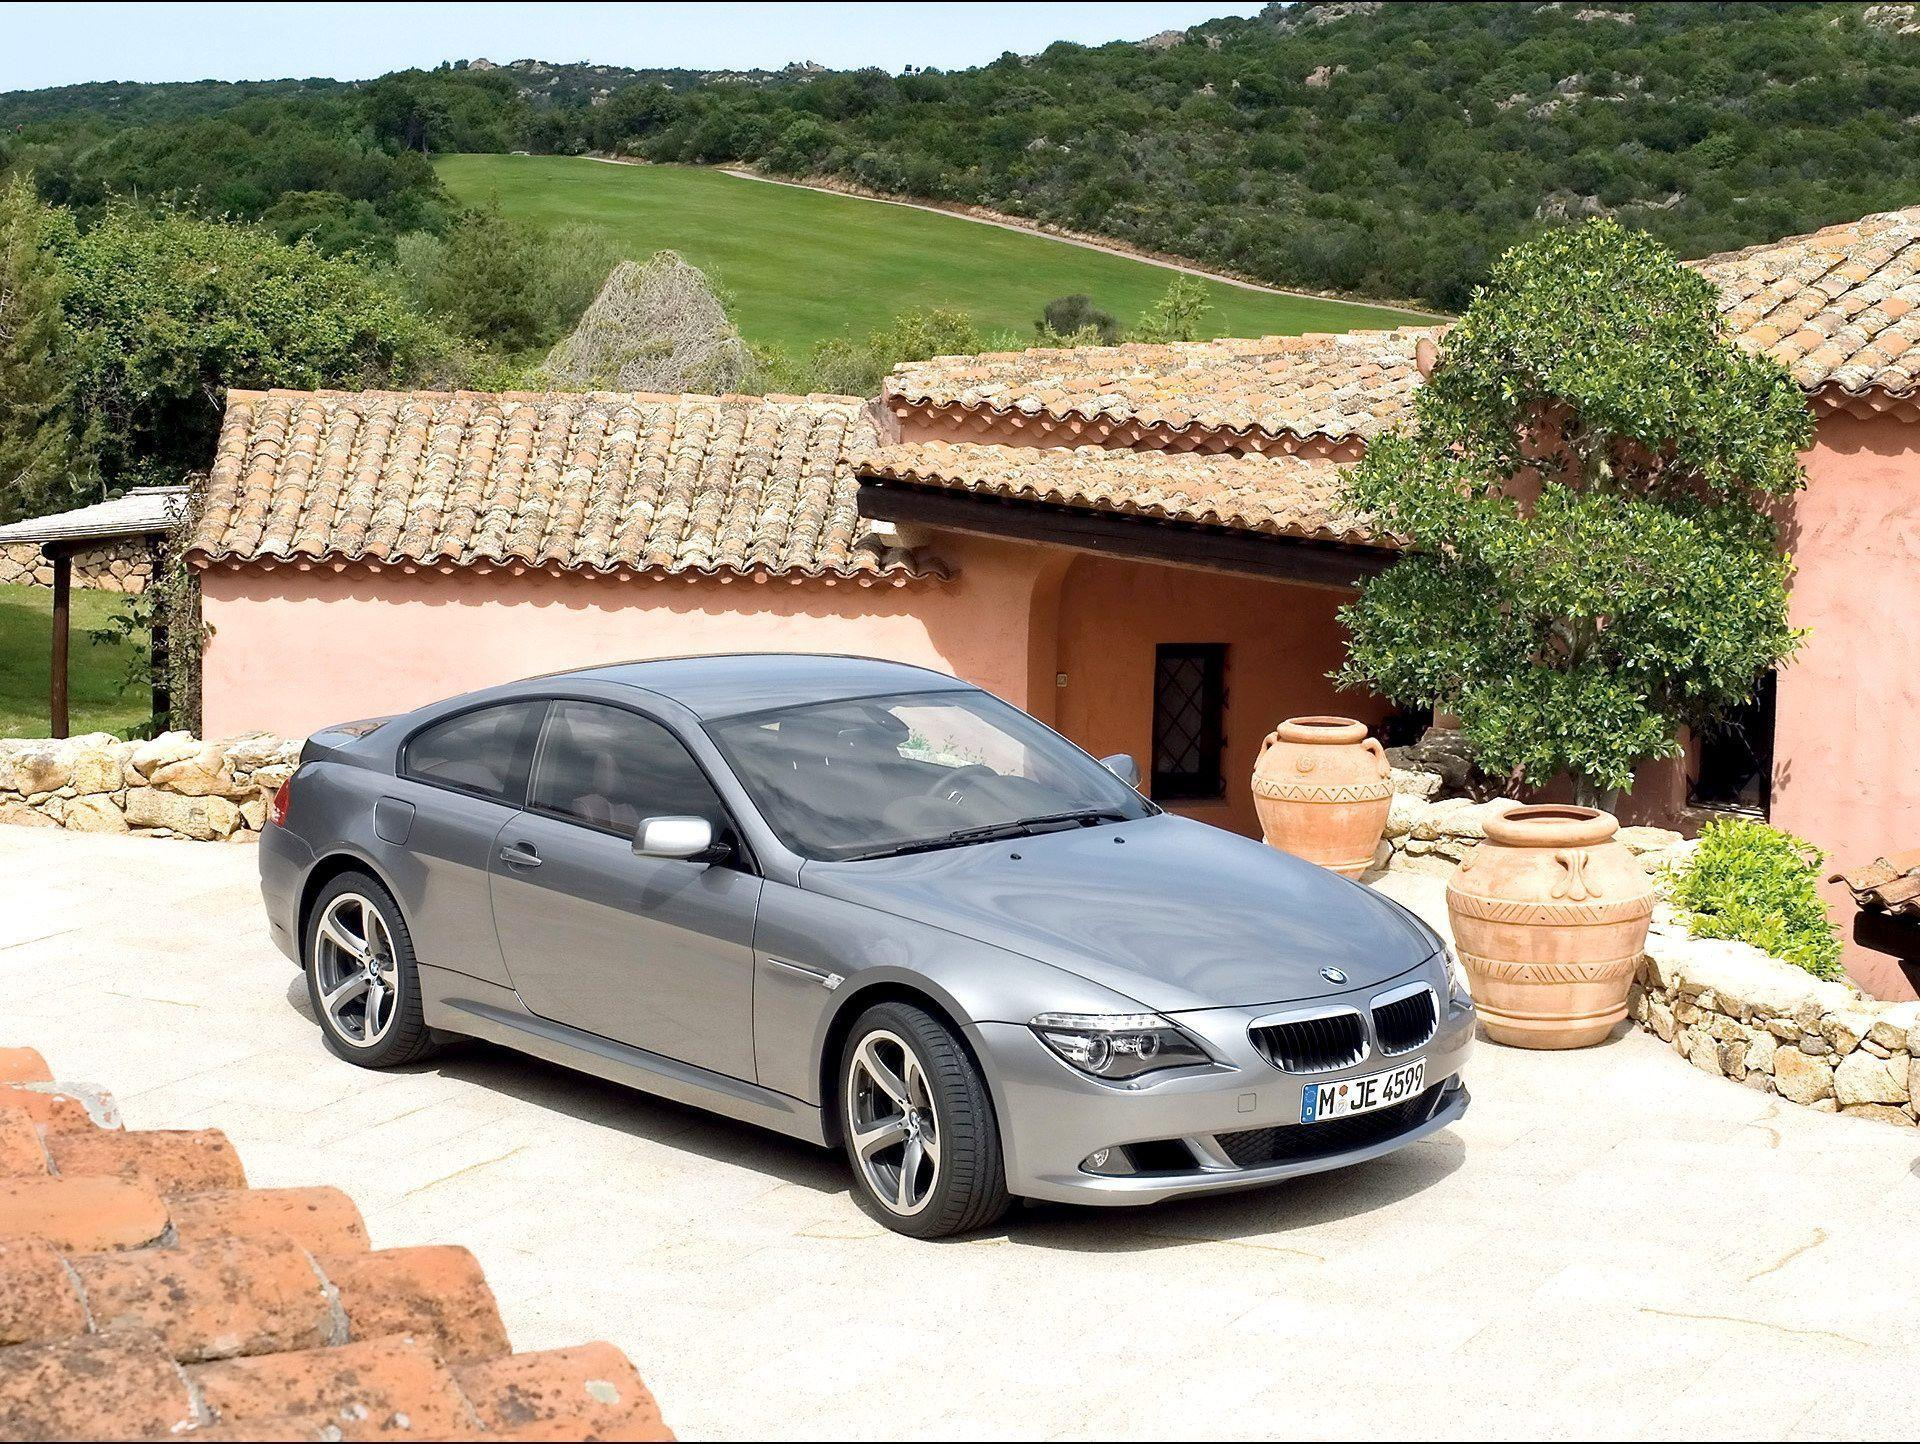 2008 BMW 6 Series Wallpaper 17 - 1920x1440